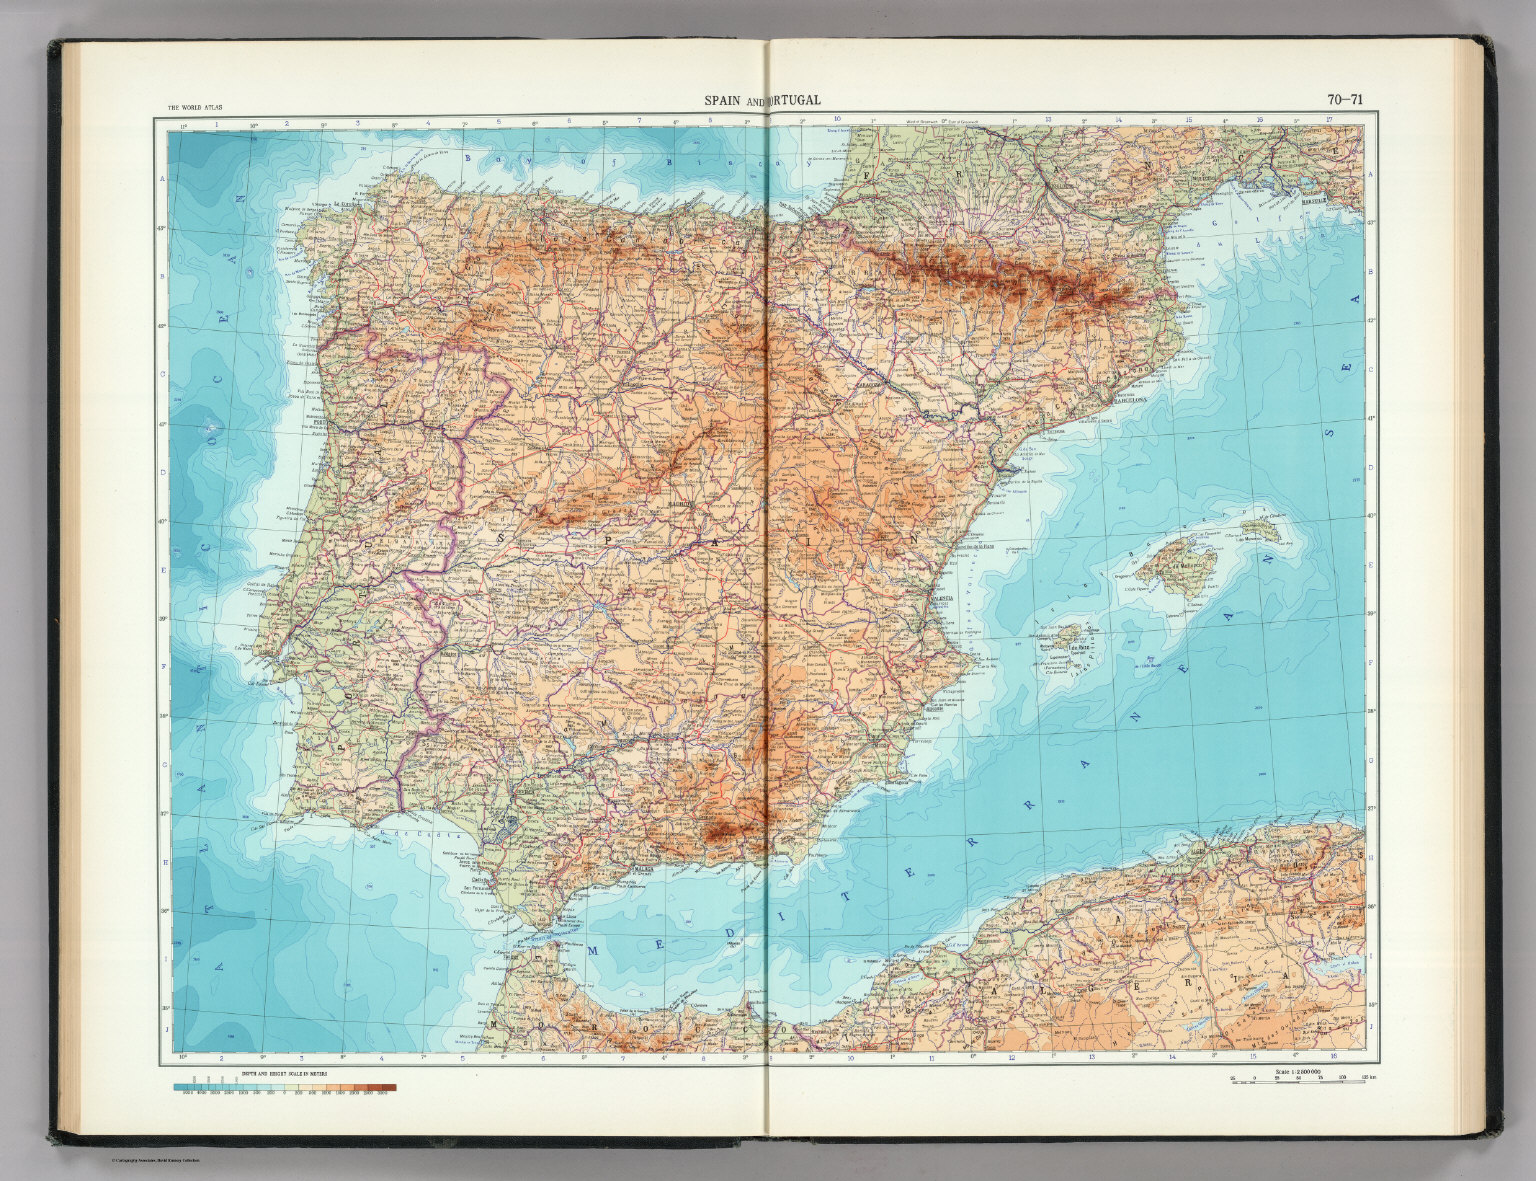 70 71 spain and portugal the world atlas david rumsey spain and portugal the world atlas gumiabroncs Gallery